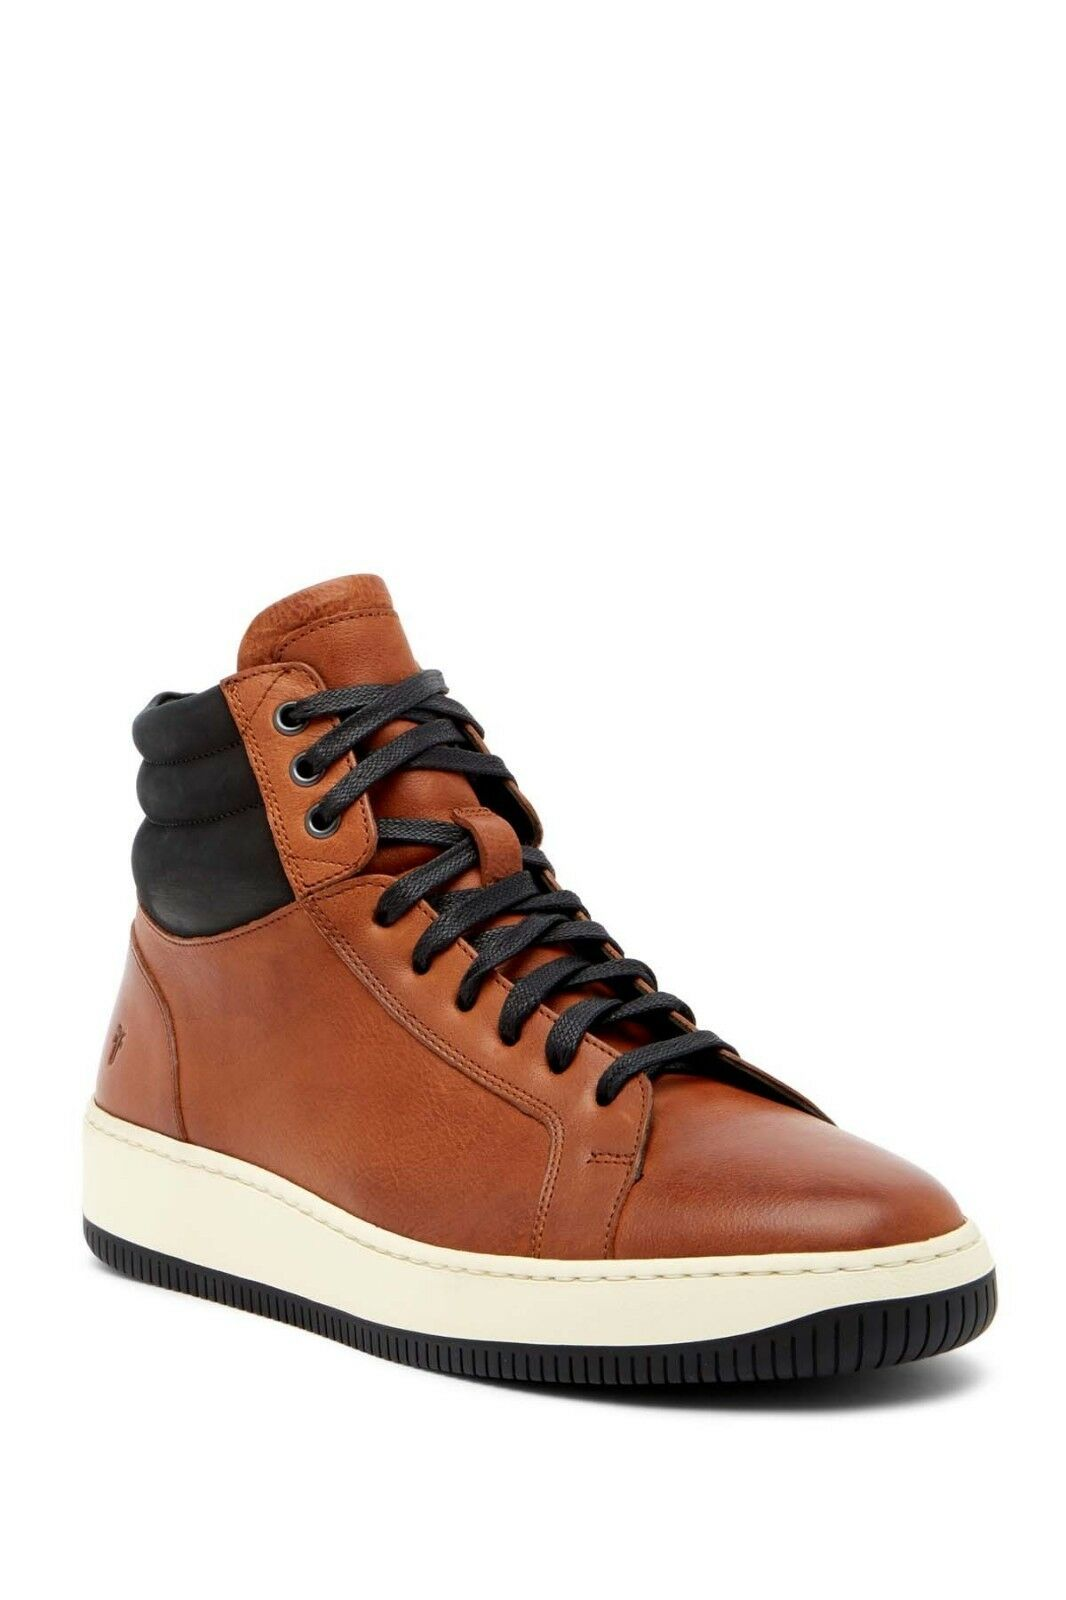 470 Authentic Rare FRYE Men's Wythe High Top Lace Up Leather Sneakers Trainers